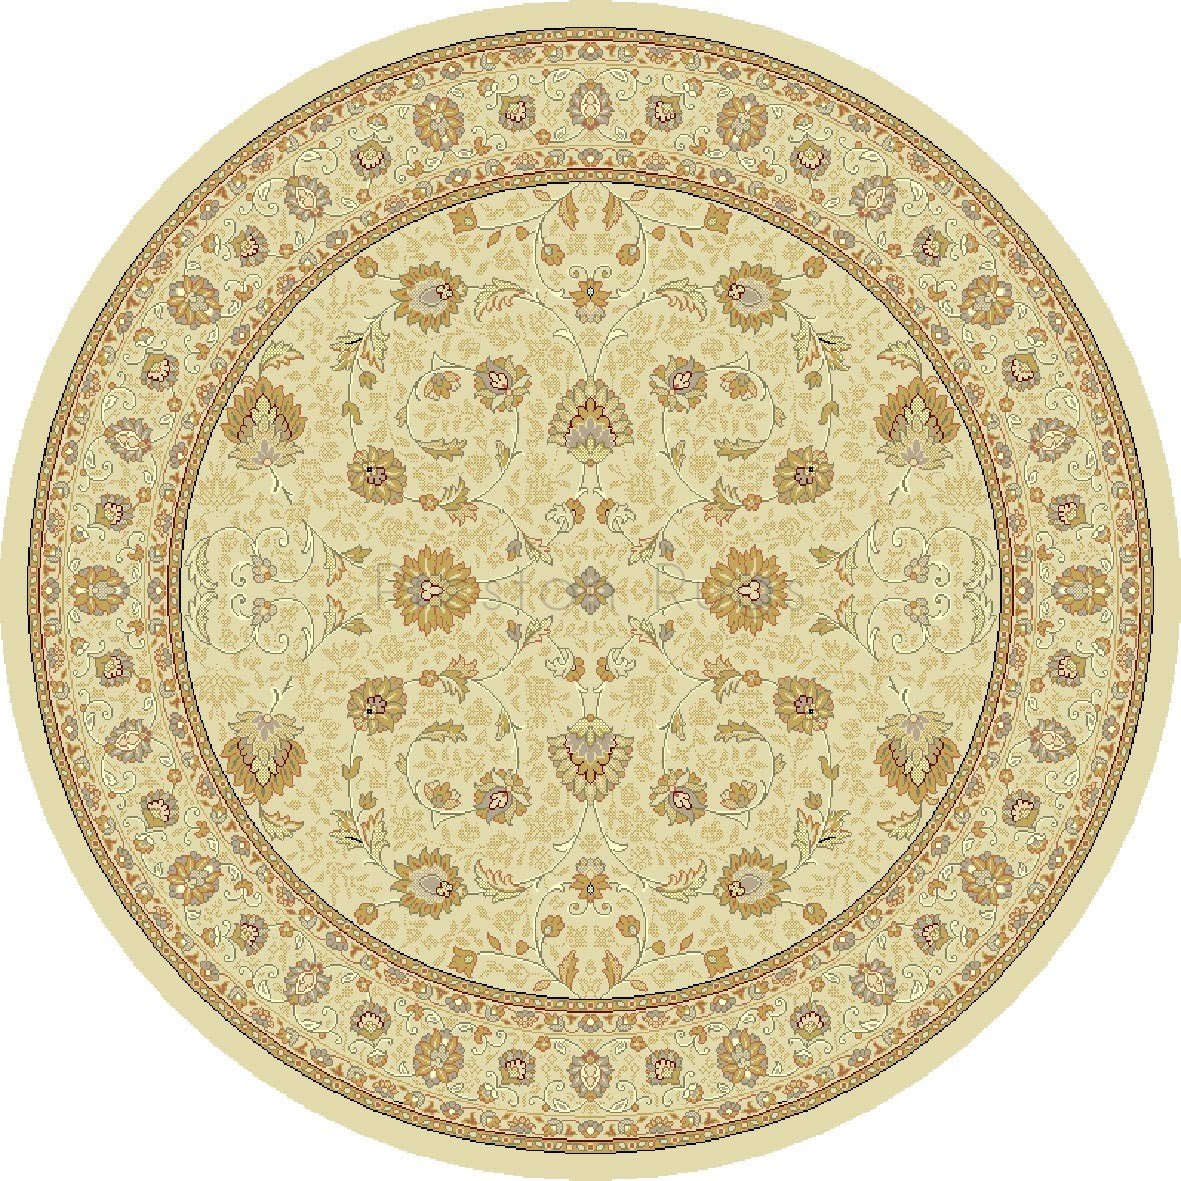 Noble Art Traditional Persian Style Rug Beige Cream 6529